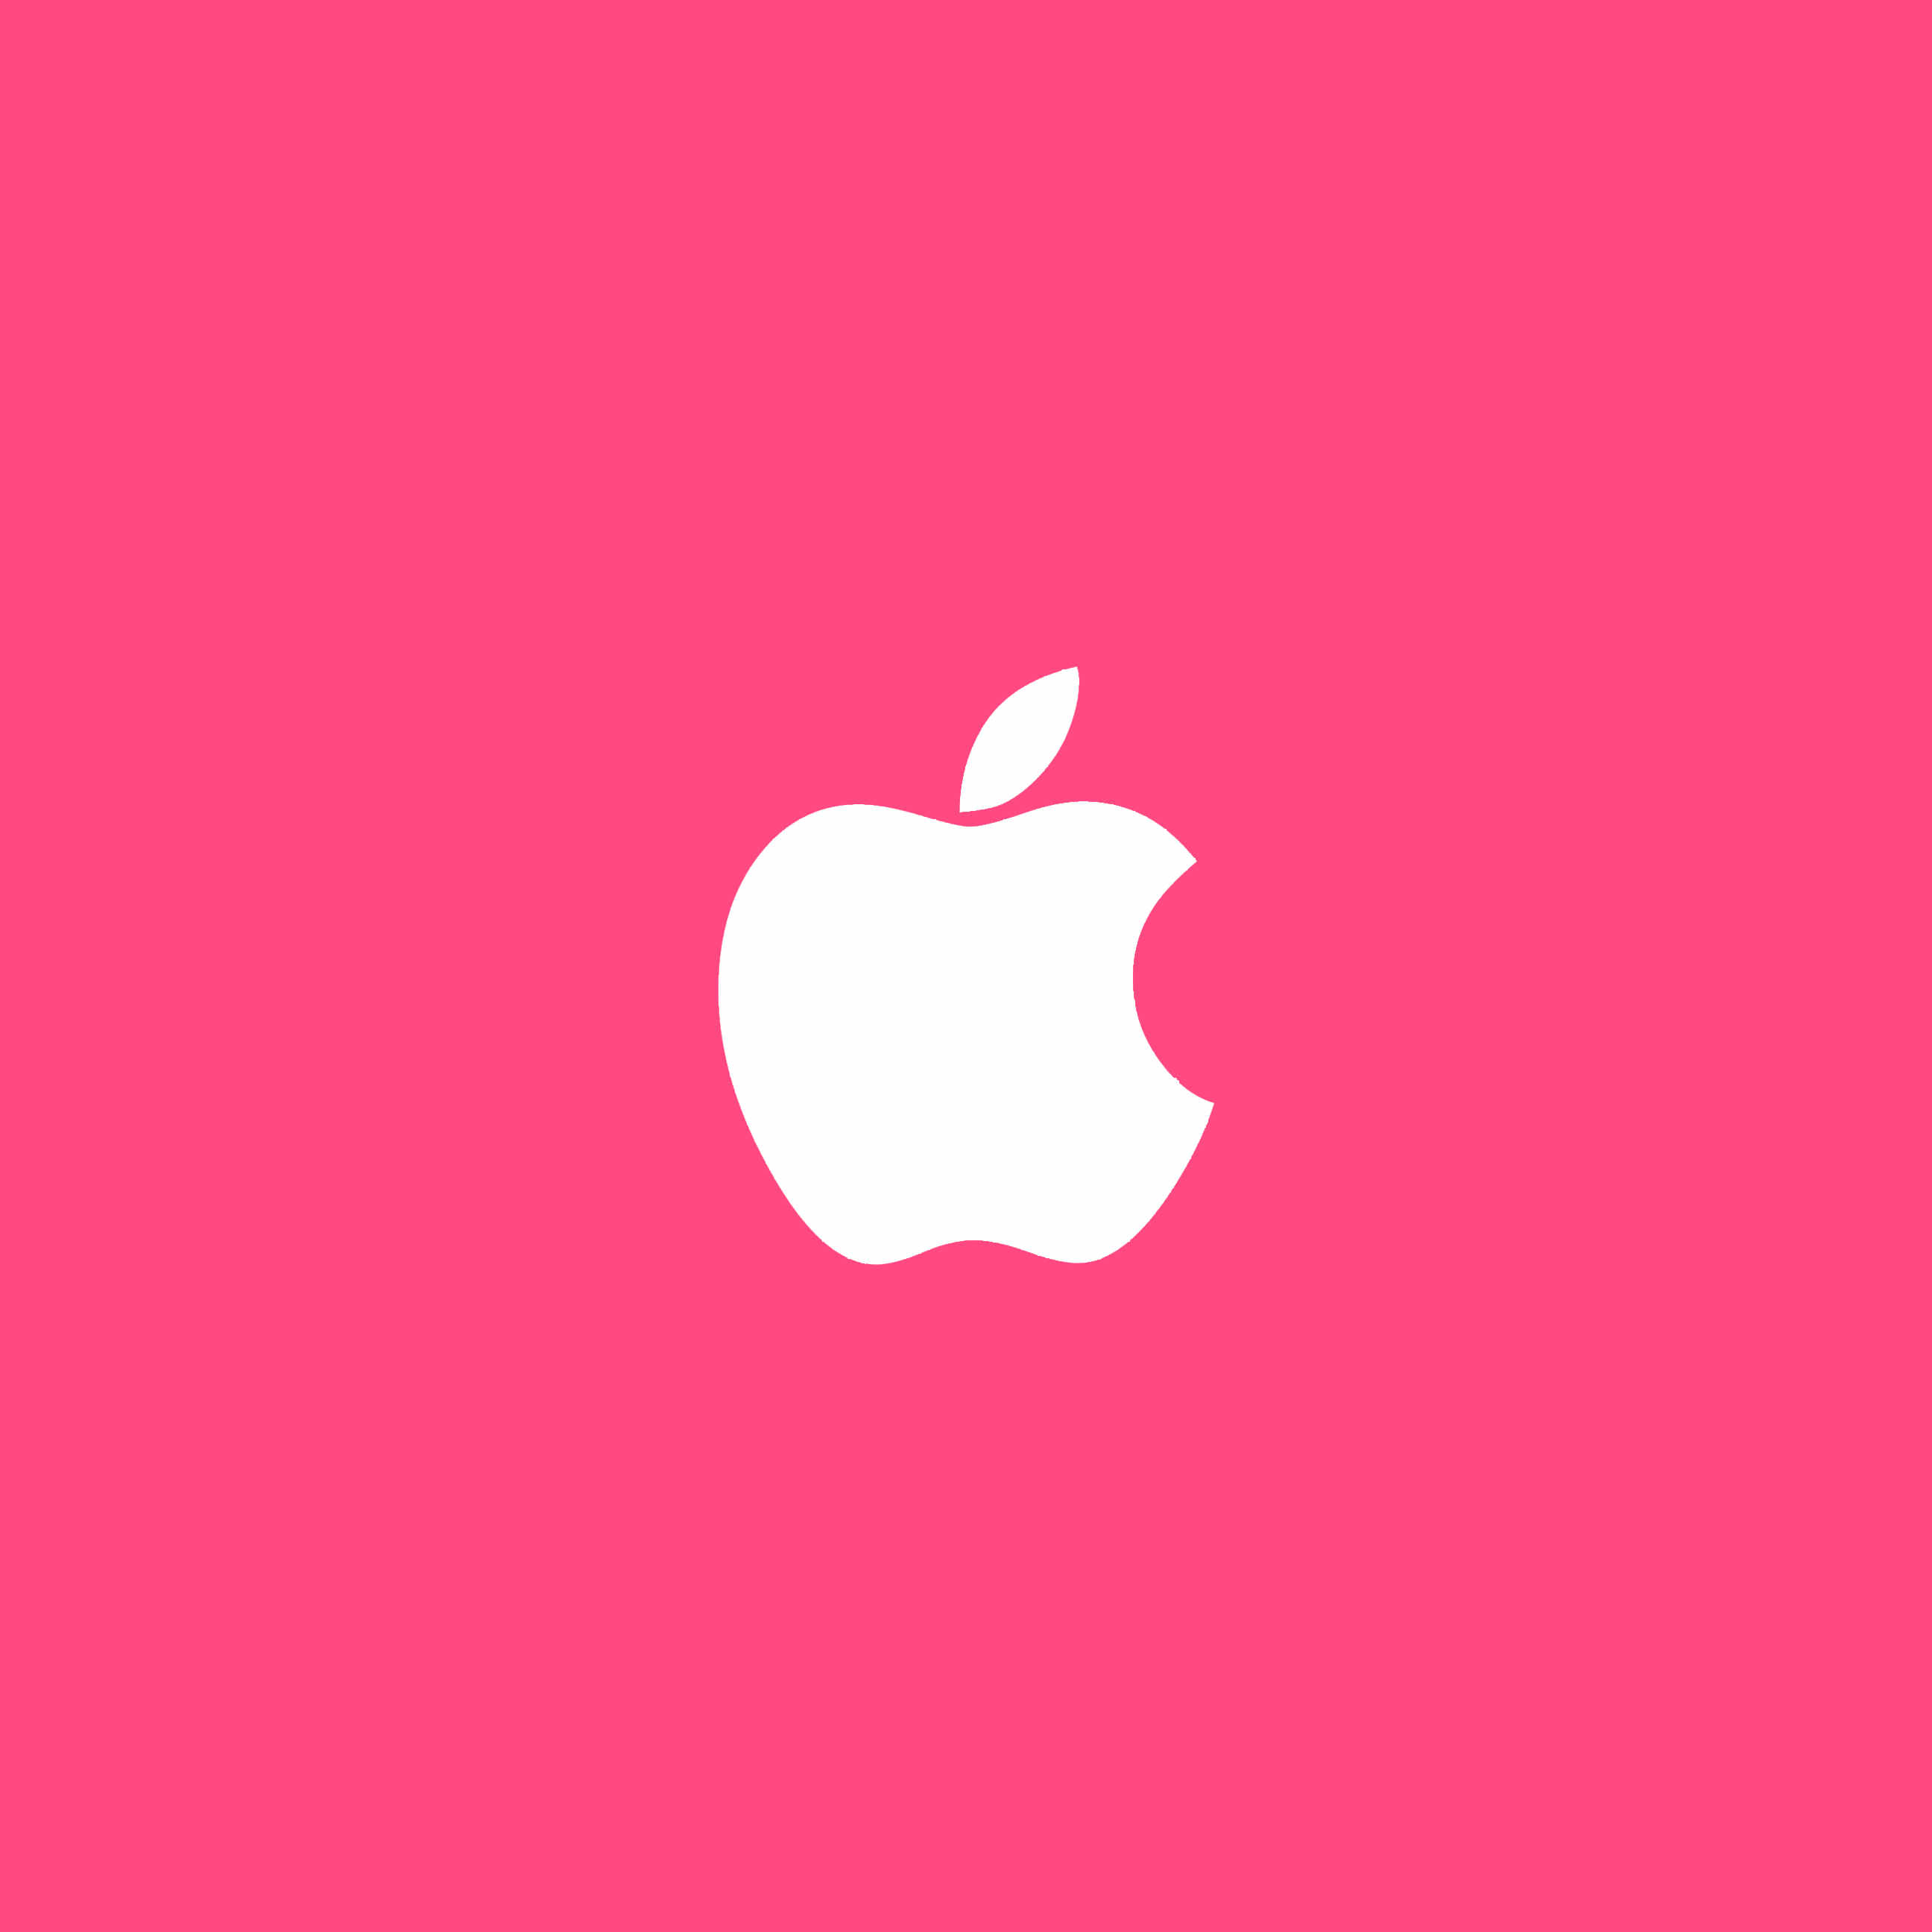 Apple Rogo pink wallpapersc iPhone6Plus 2592x2592